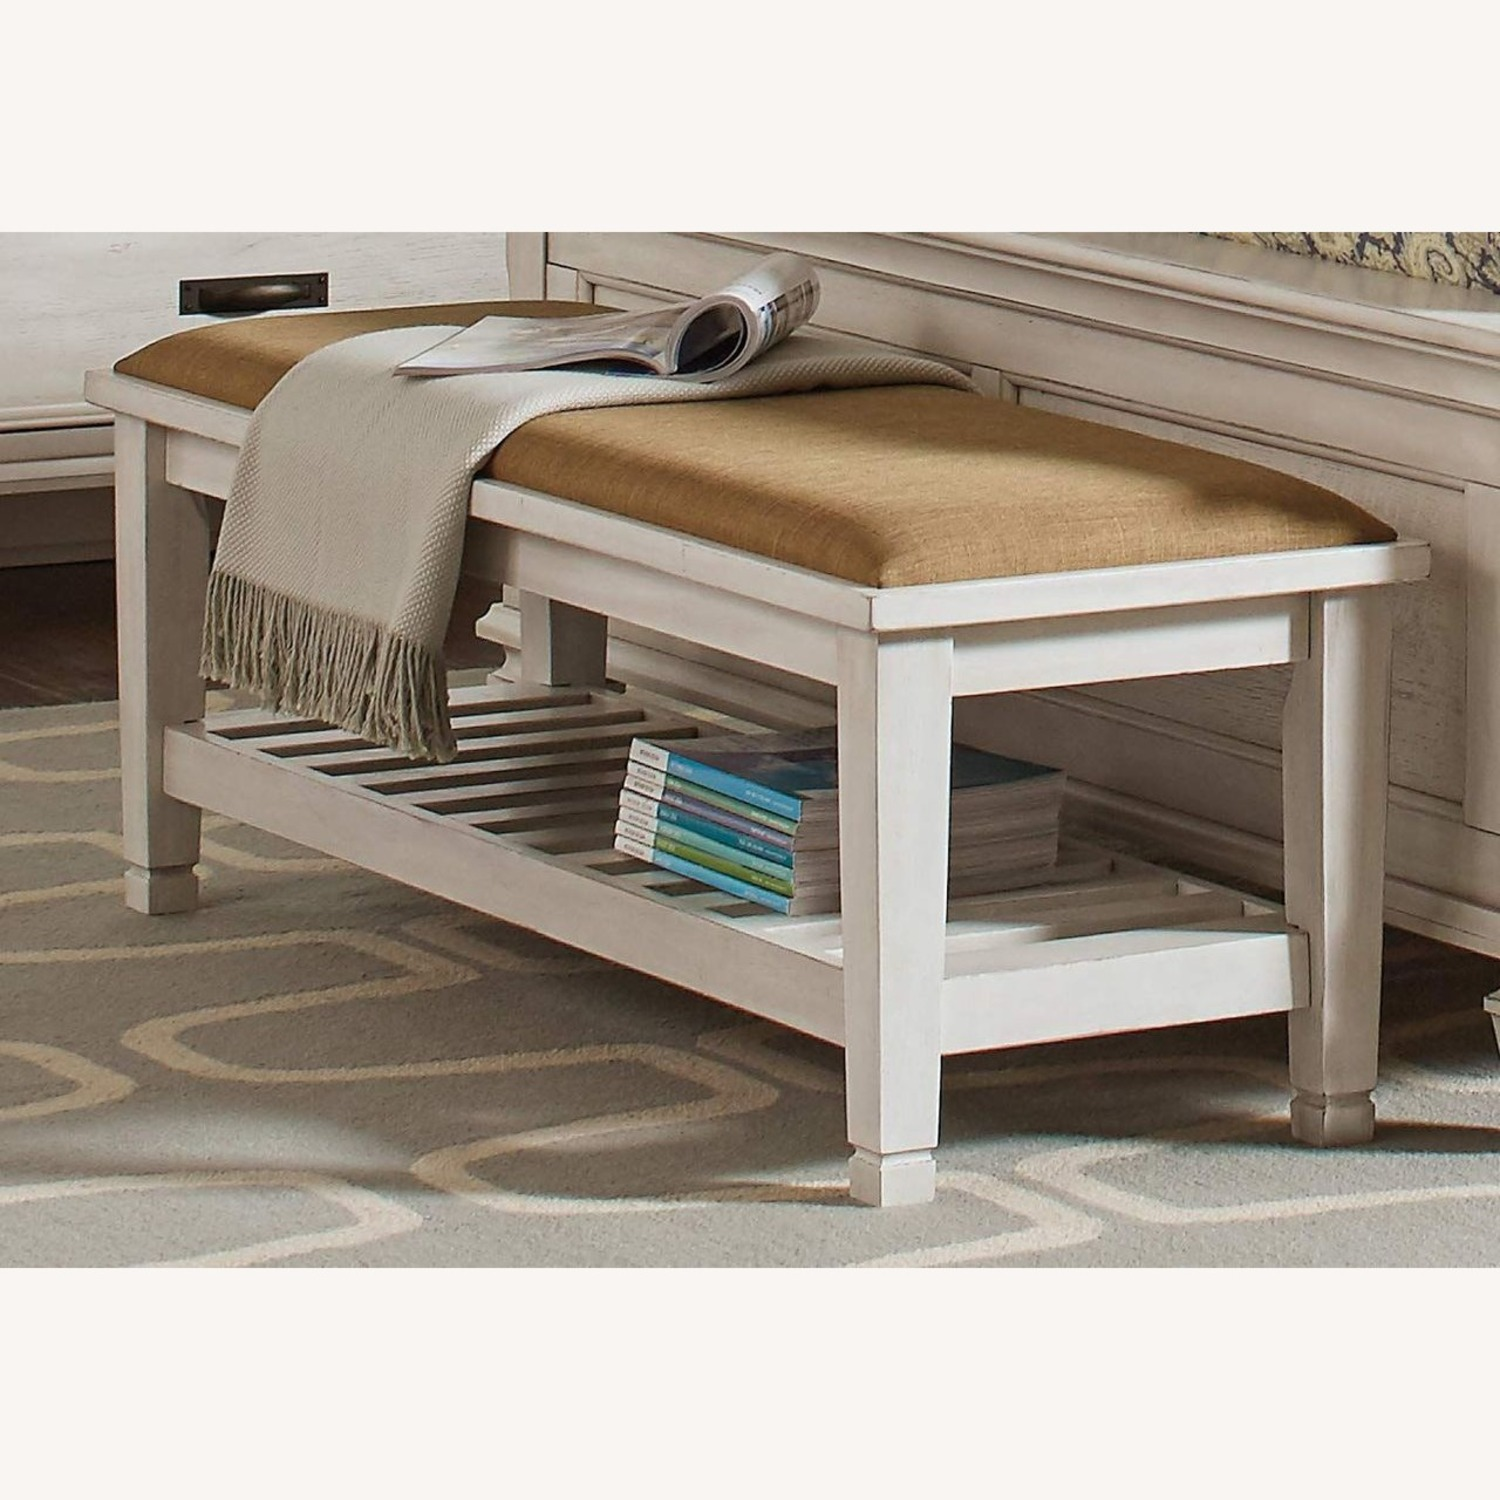 Bench In Antique White Finish W/ Brown Fabric - image-2